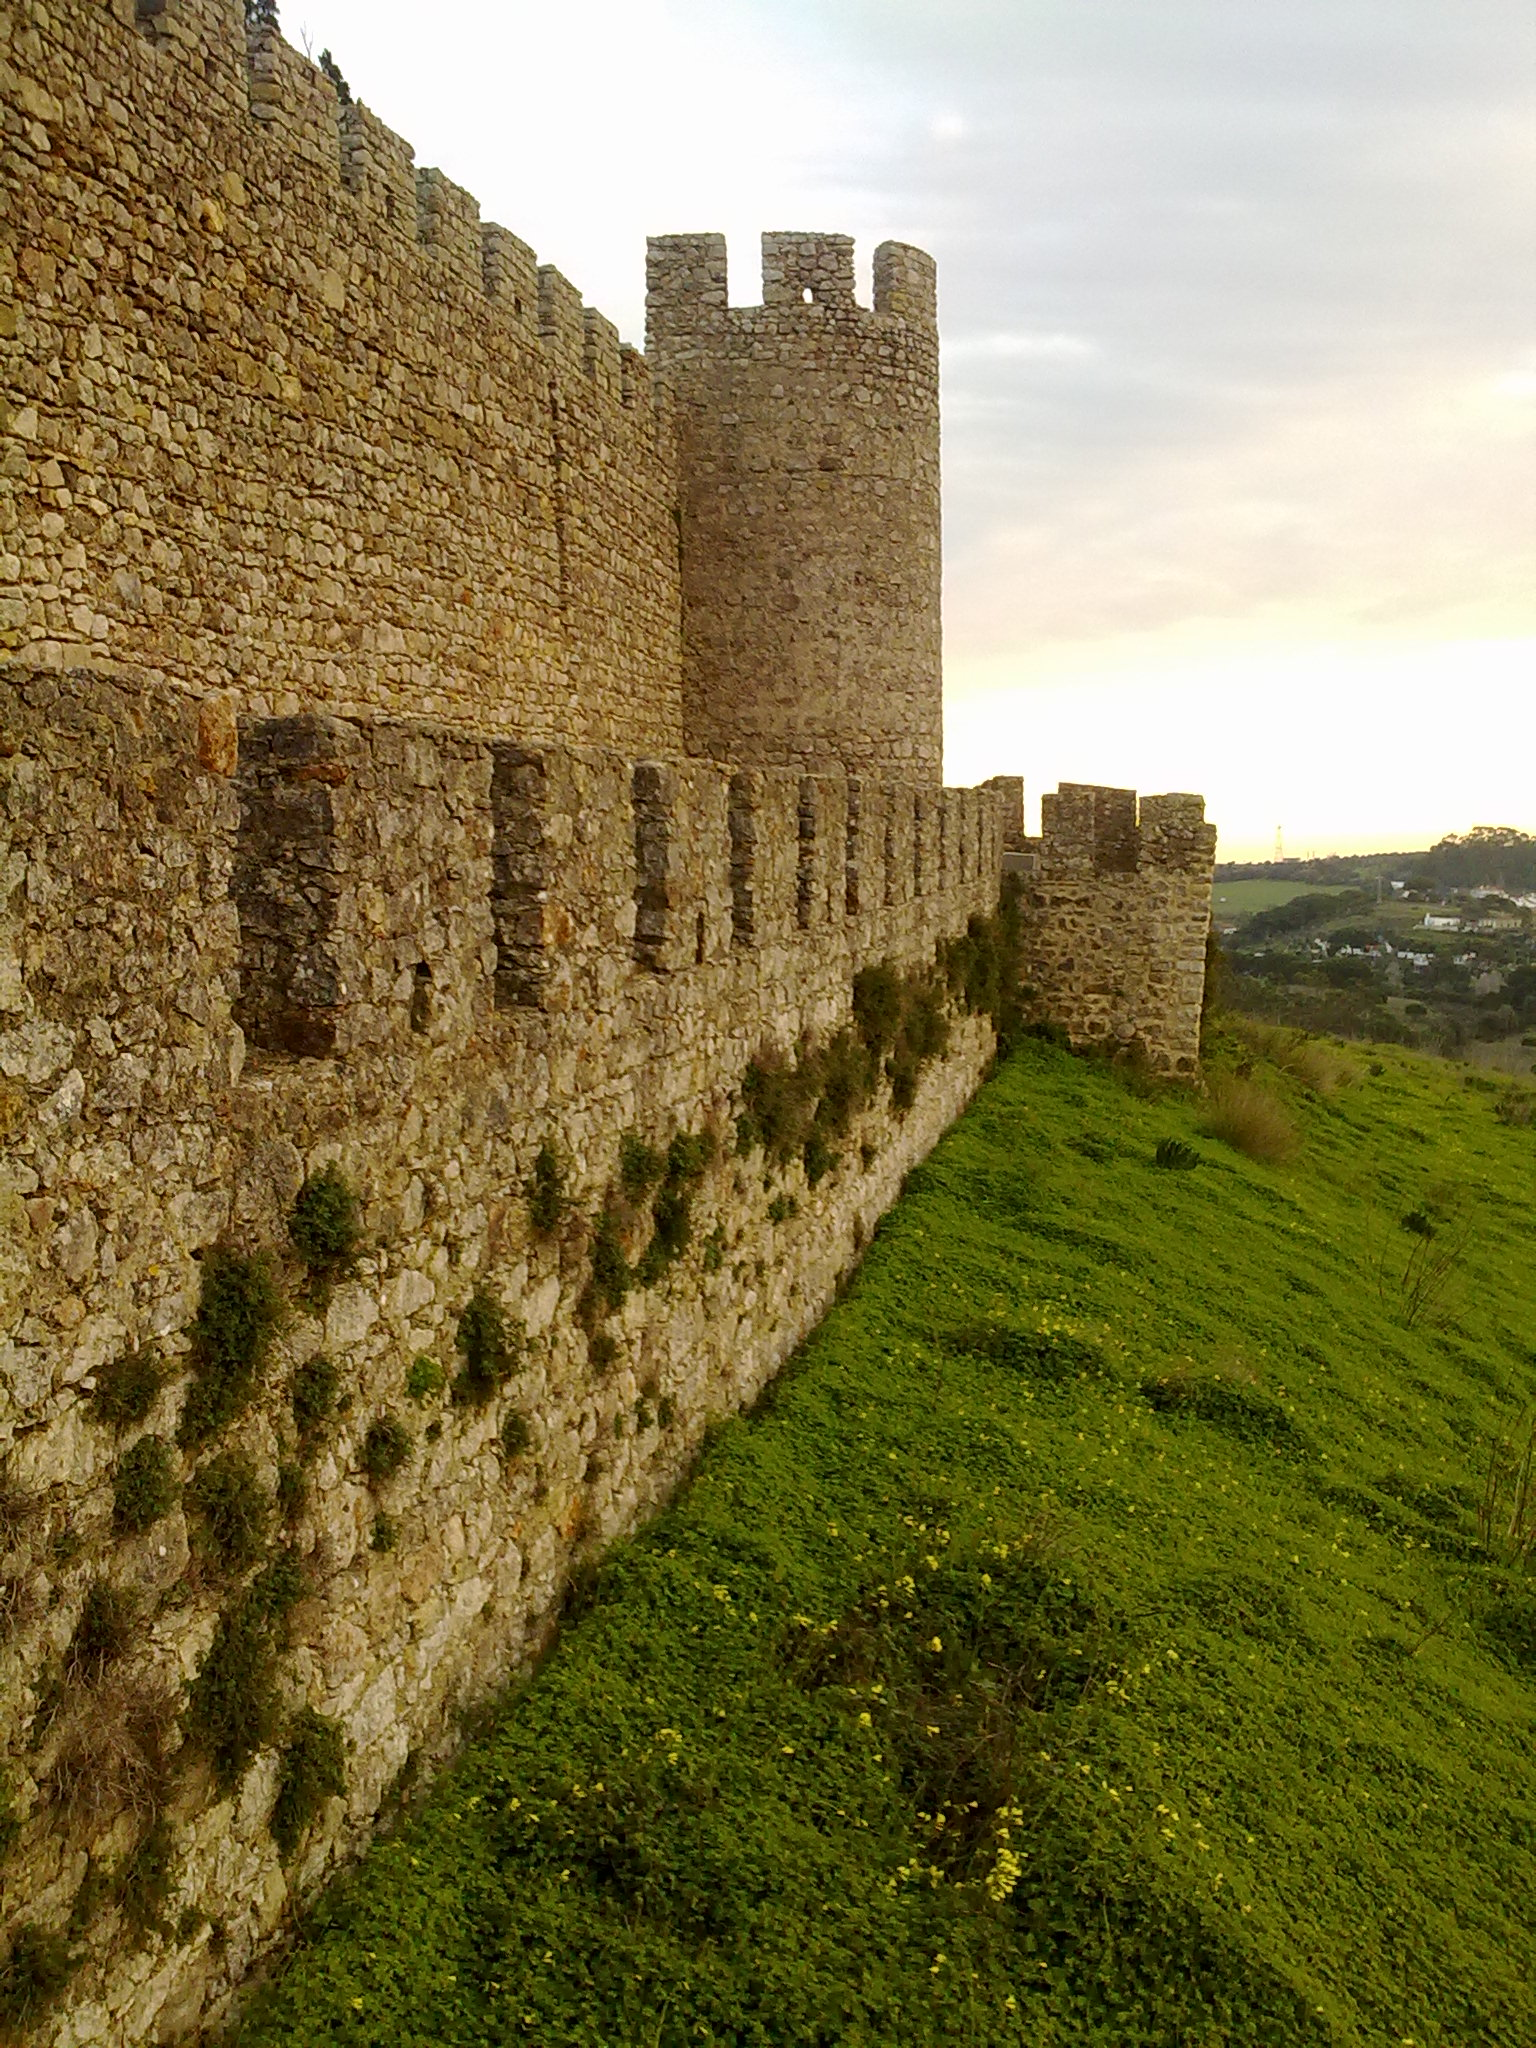 Castelo de Santiago do Cacém - muralha, torre e barbacã (By Adriao. Creative Commons via Wikimedia Commons).